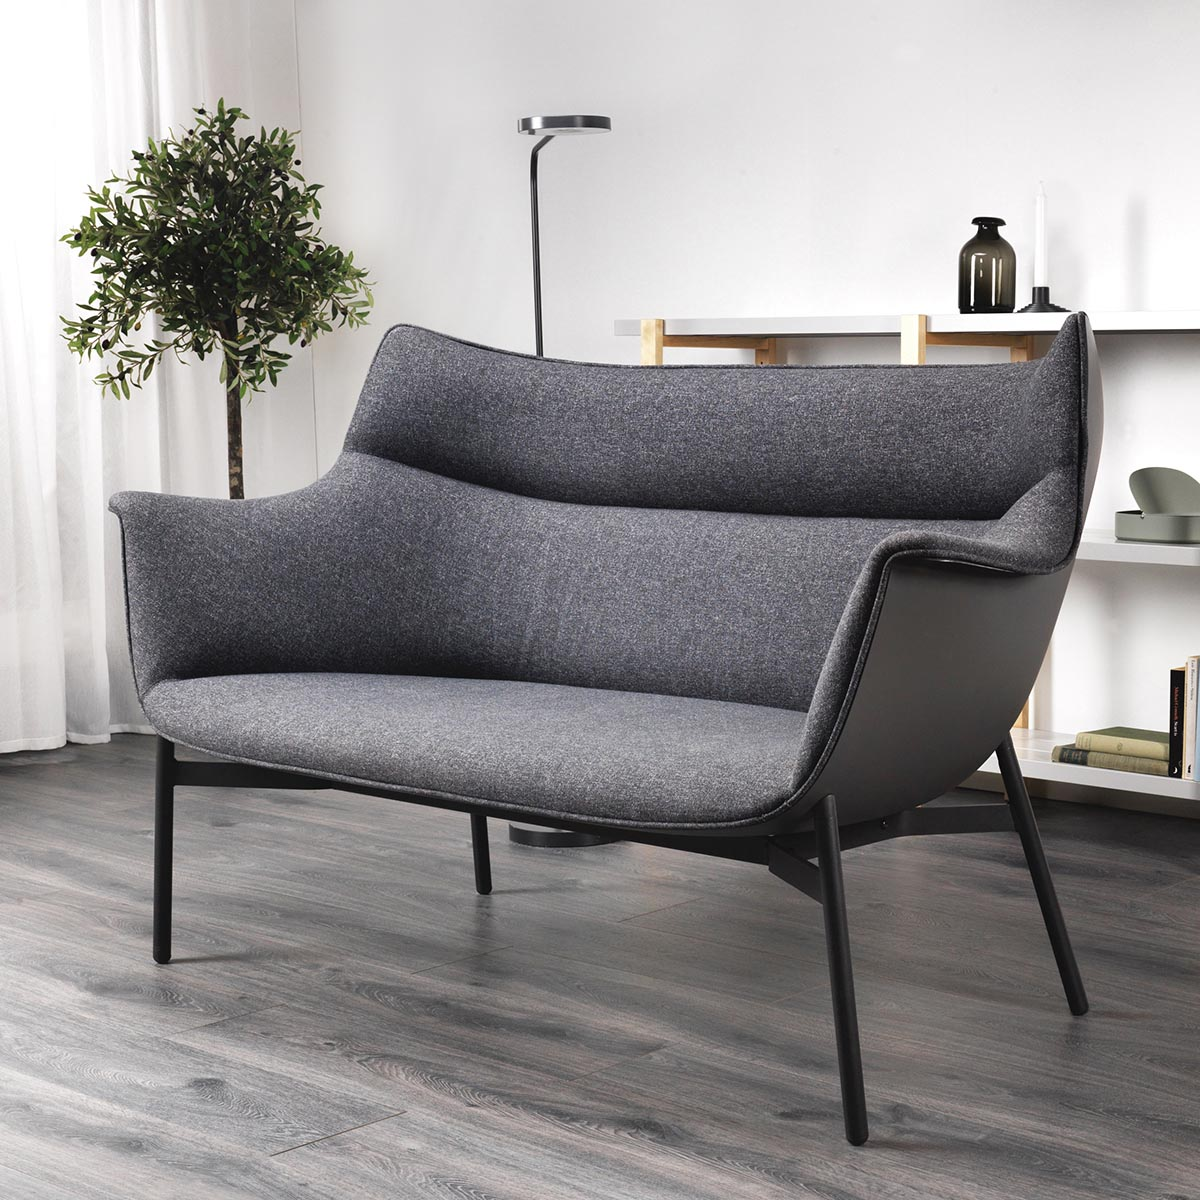 Ikea Bettsofa Ypperlig First Look Ikea X Hay Ypperlig Collection Democratic